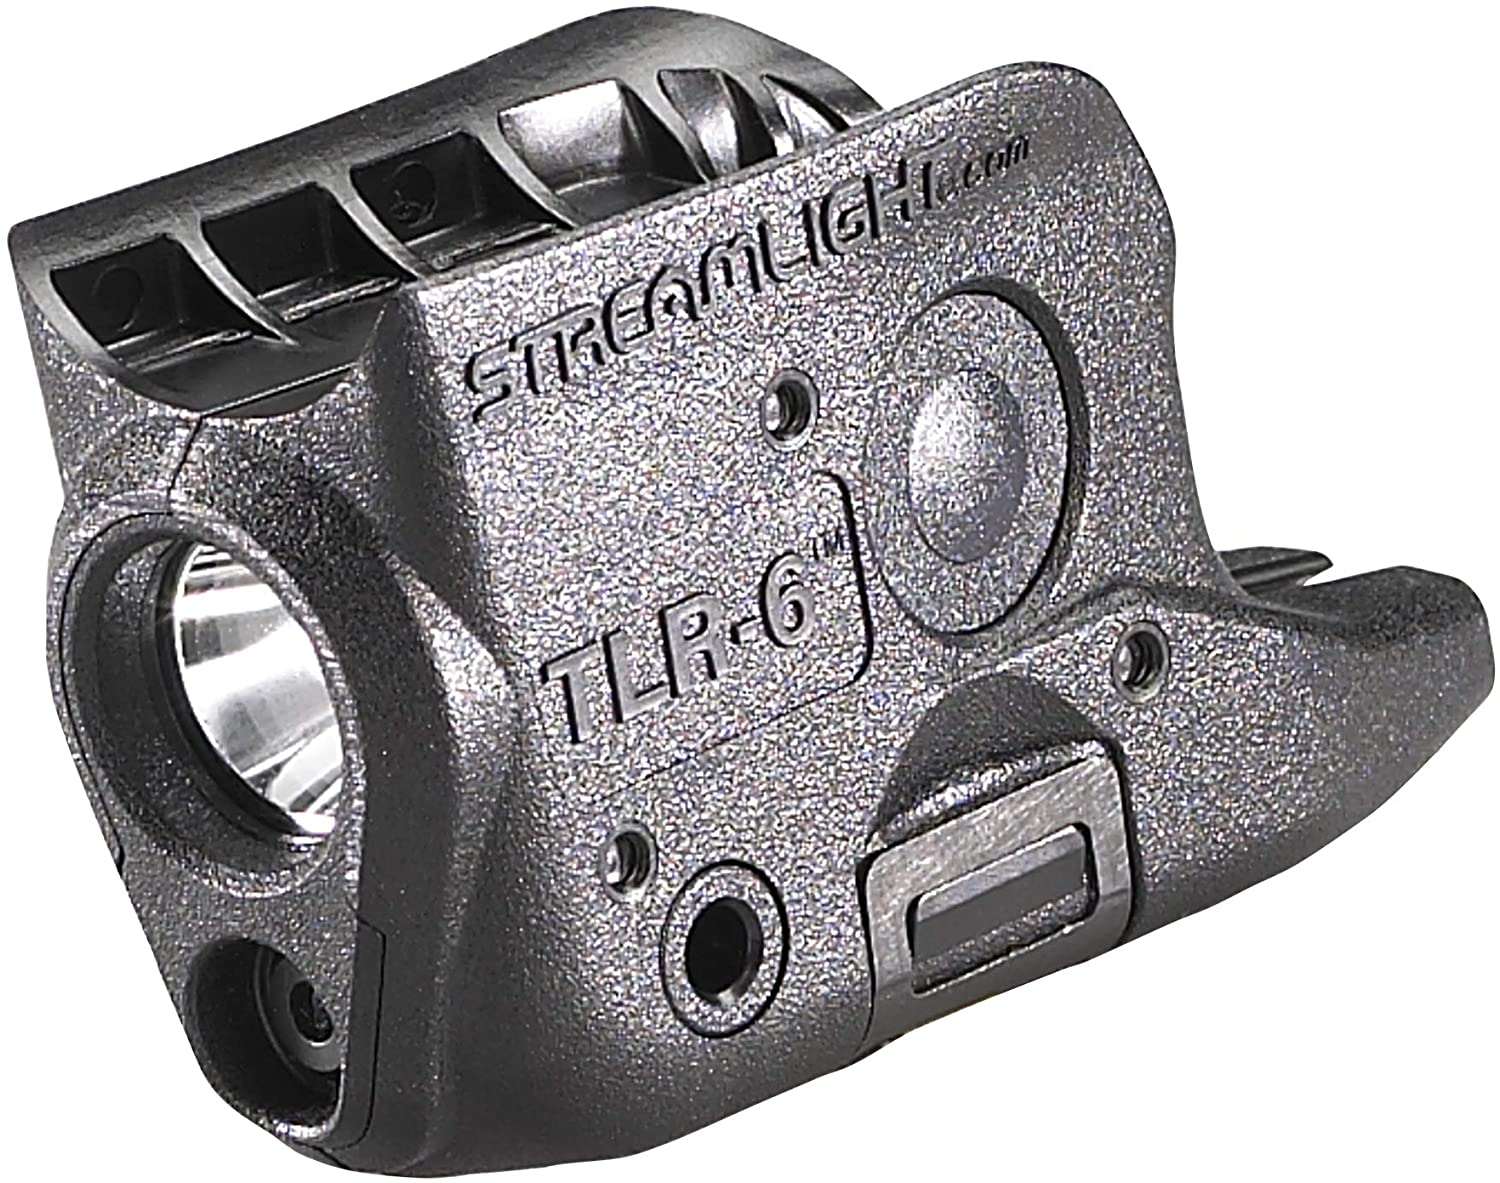 Streamlight 69270 TLR-6 Tactical Pistol Mount Flashlight 100 Lumen with Integrated Red Aiming Laser Designed Exclusively and Solely  for Glock 42/43, Black